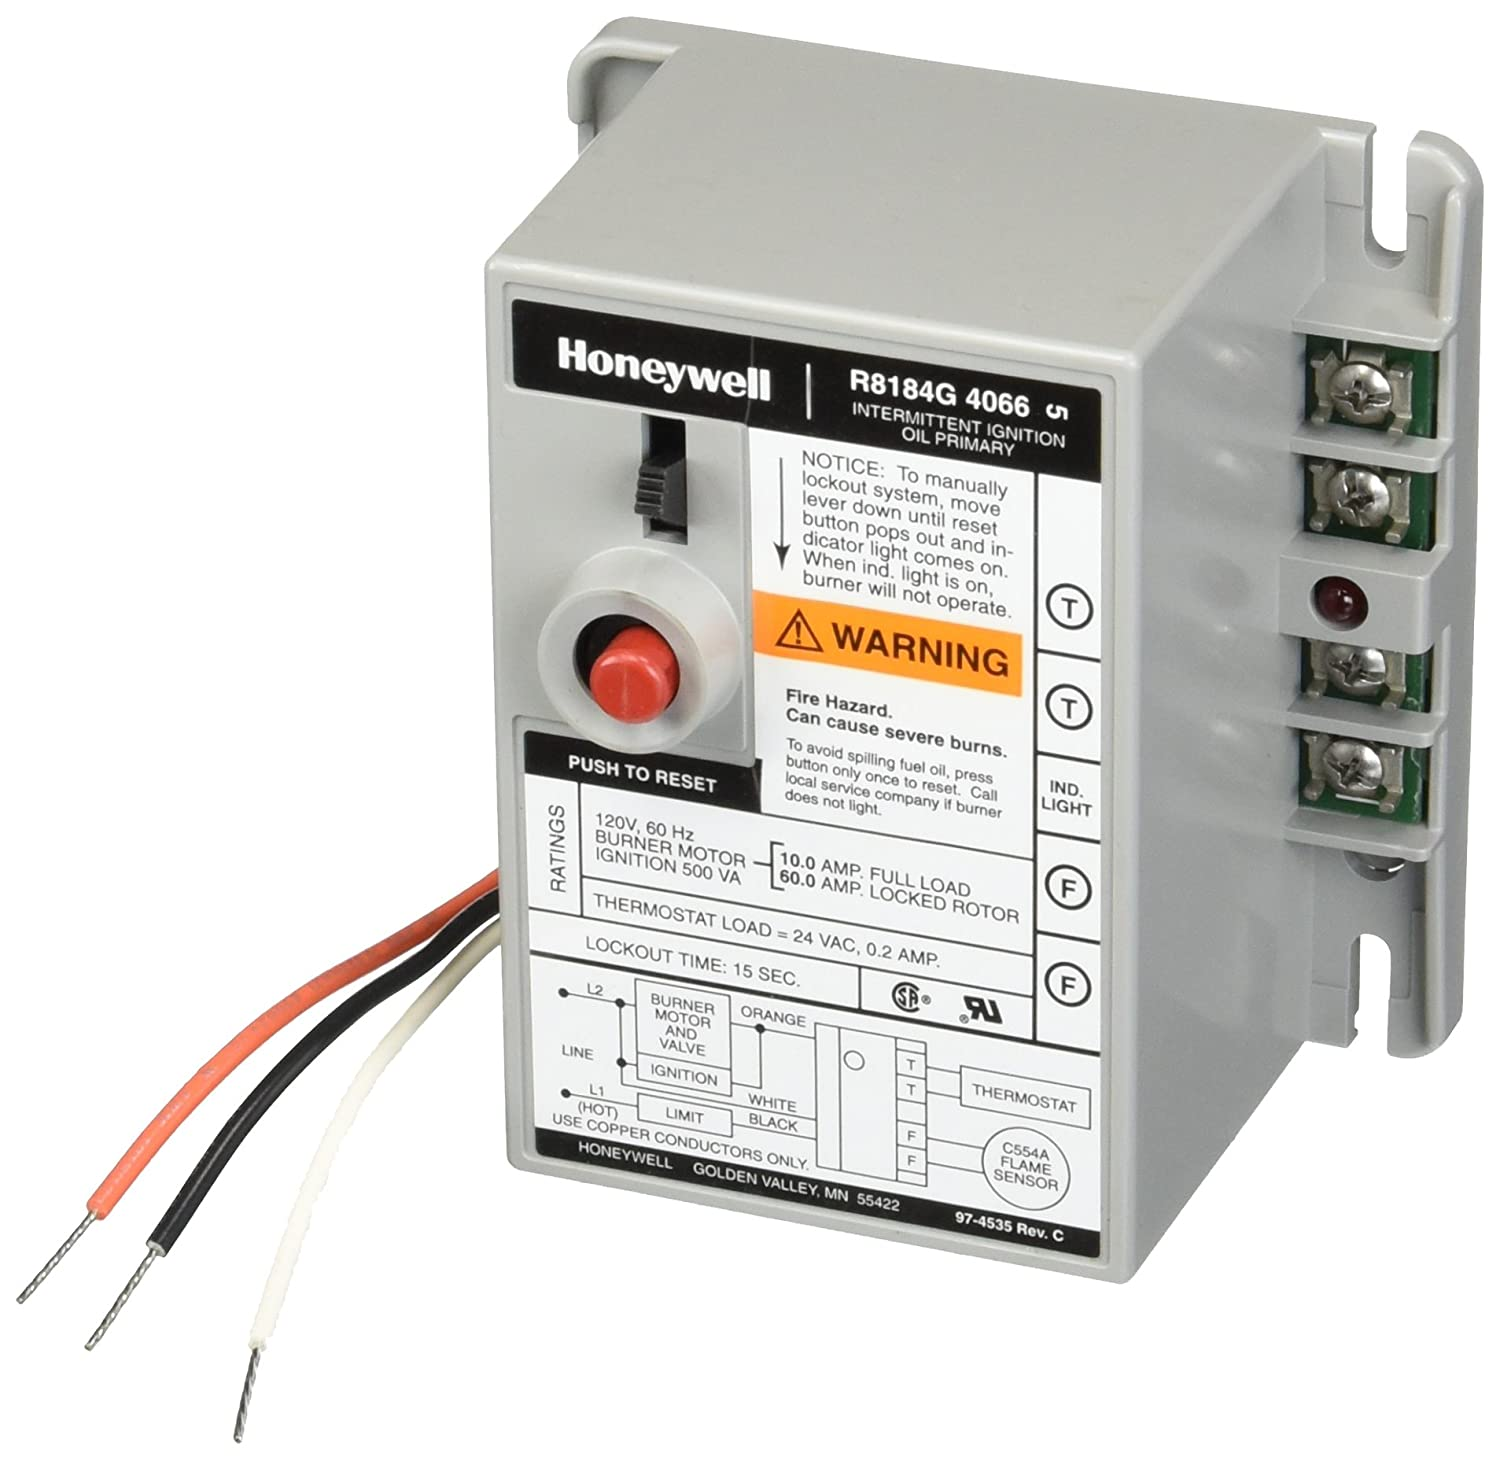 Honeywell R8184g 4066 Protectorelay Oil Burner Control With 15 S Furnace Wiring Safety Timing Alarm Outputs And Manual Switch Hvac Controls